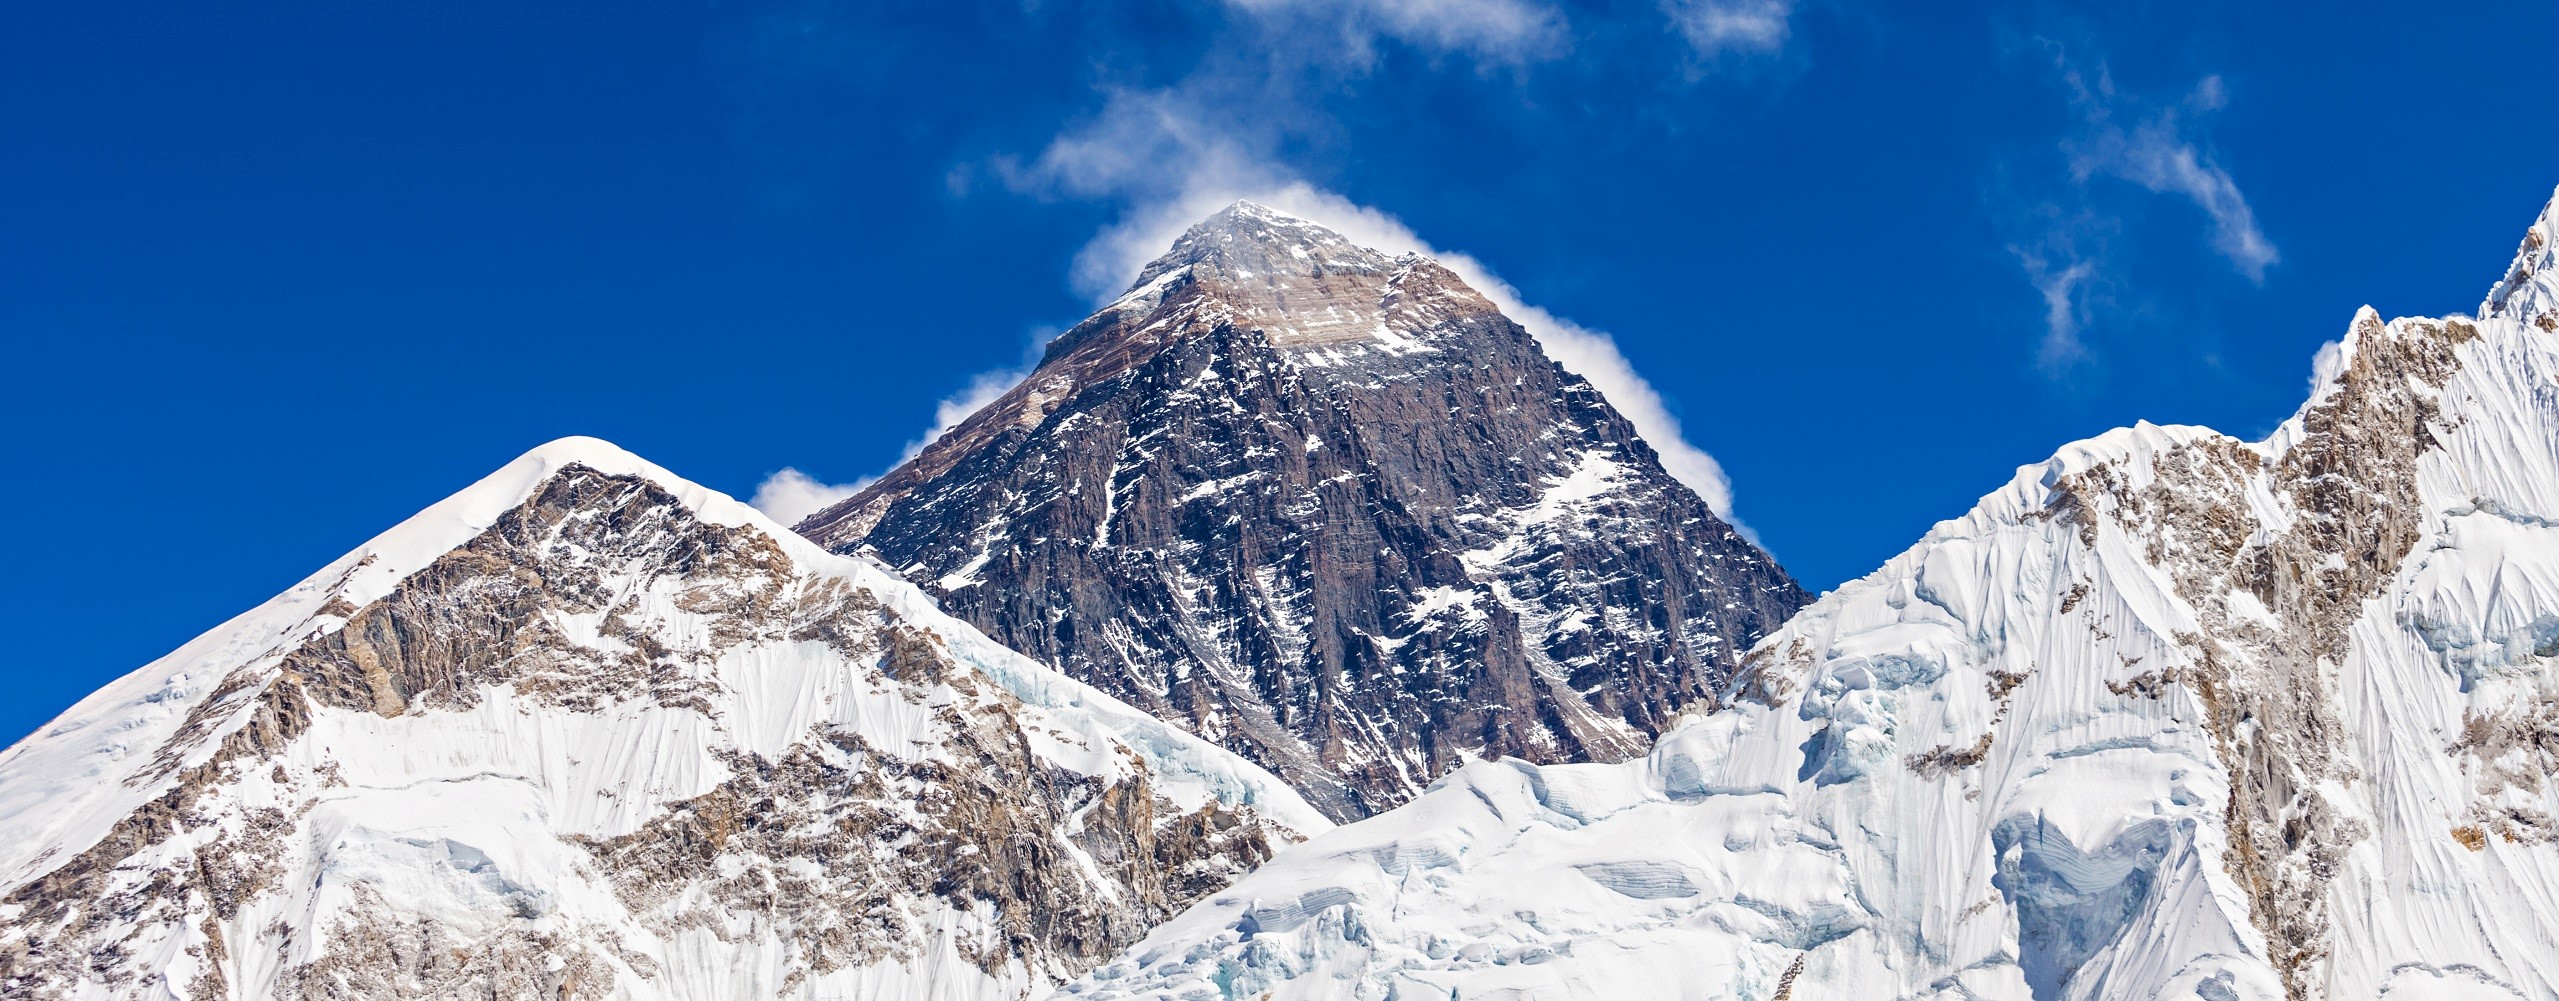 Nepal - Everest - Mount Everest